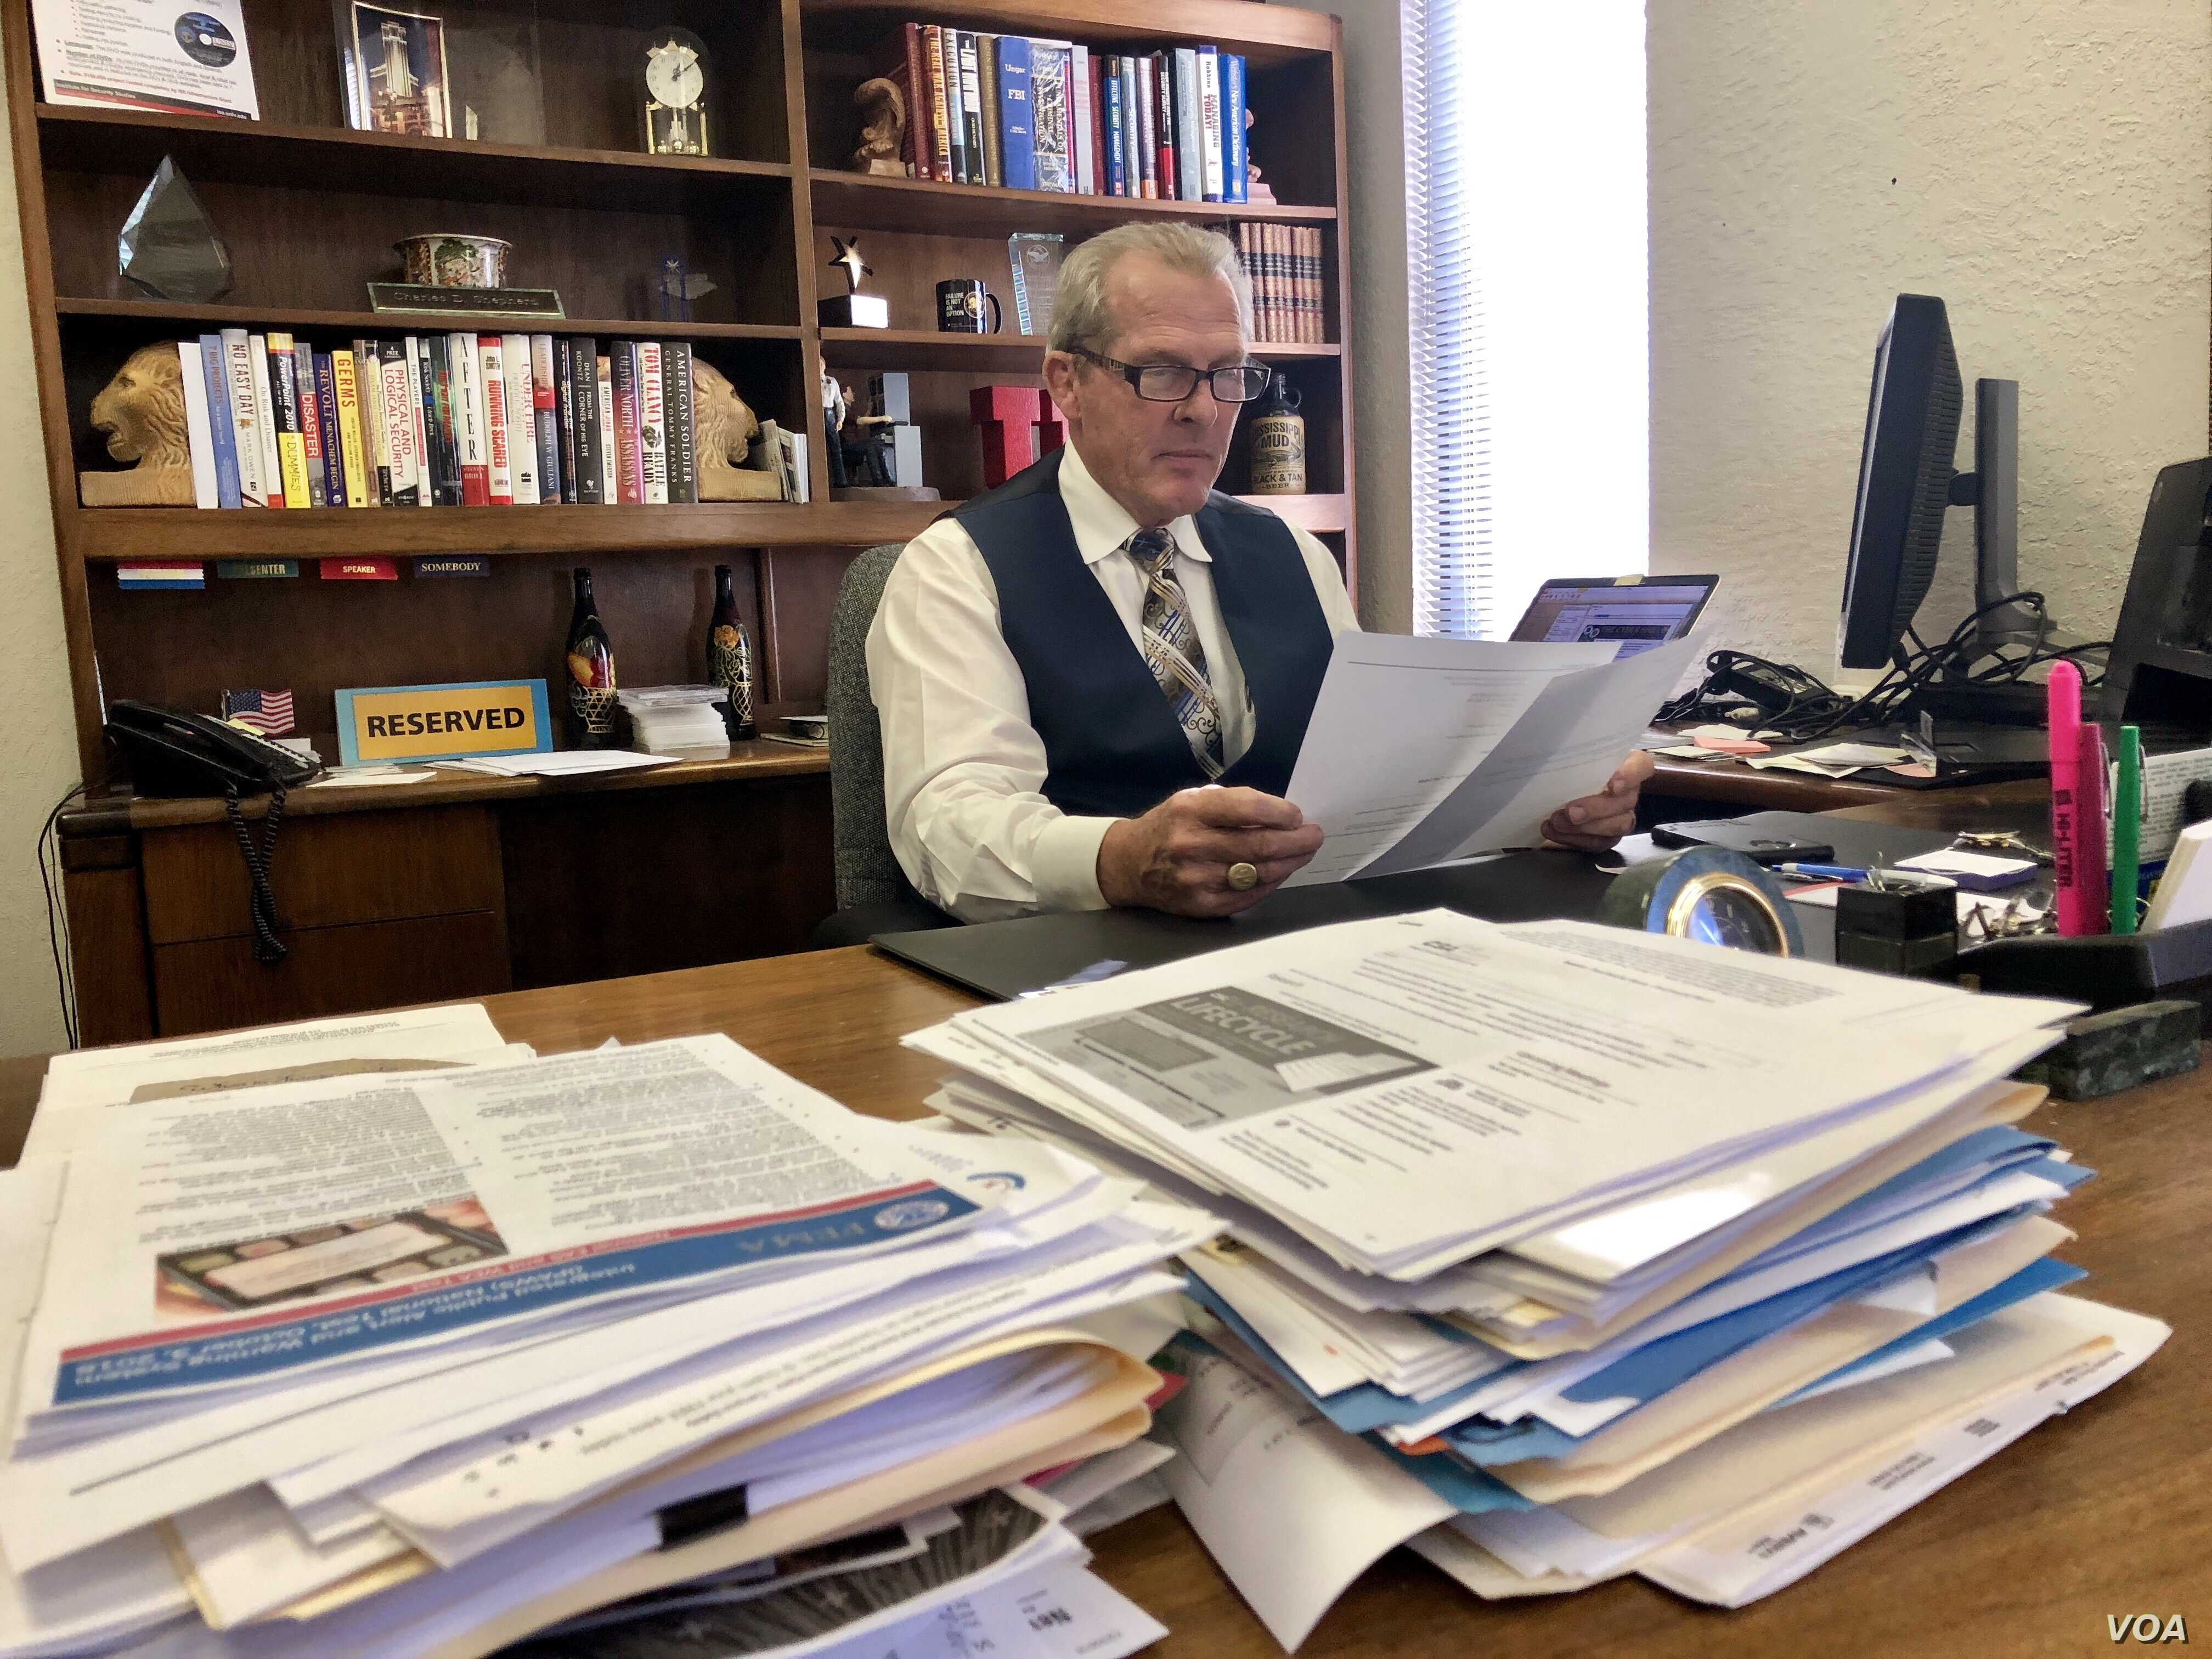 C. David Shepherd reviews documents in his Las Vegas office. Shepherd owns the Readiness Resource Group and was head of security of the Venetian Hotel and Casino for nearly eight years.